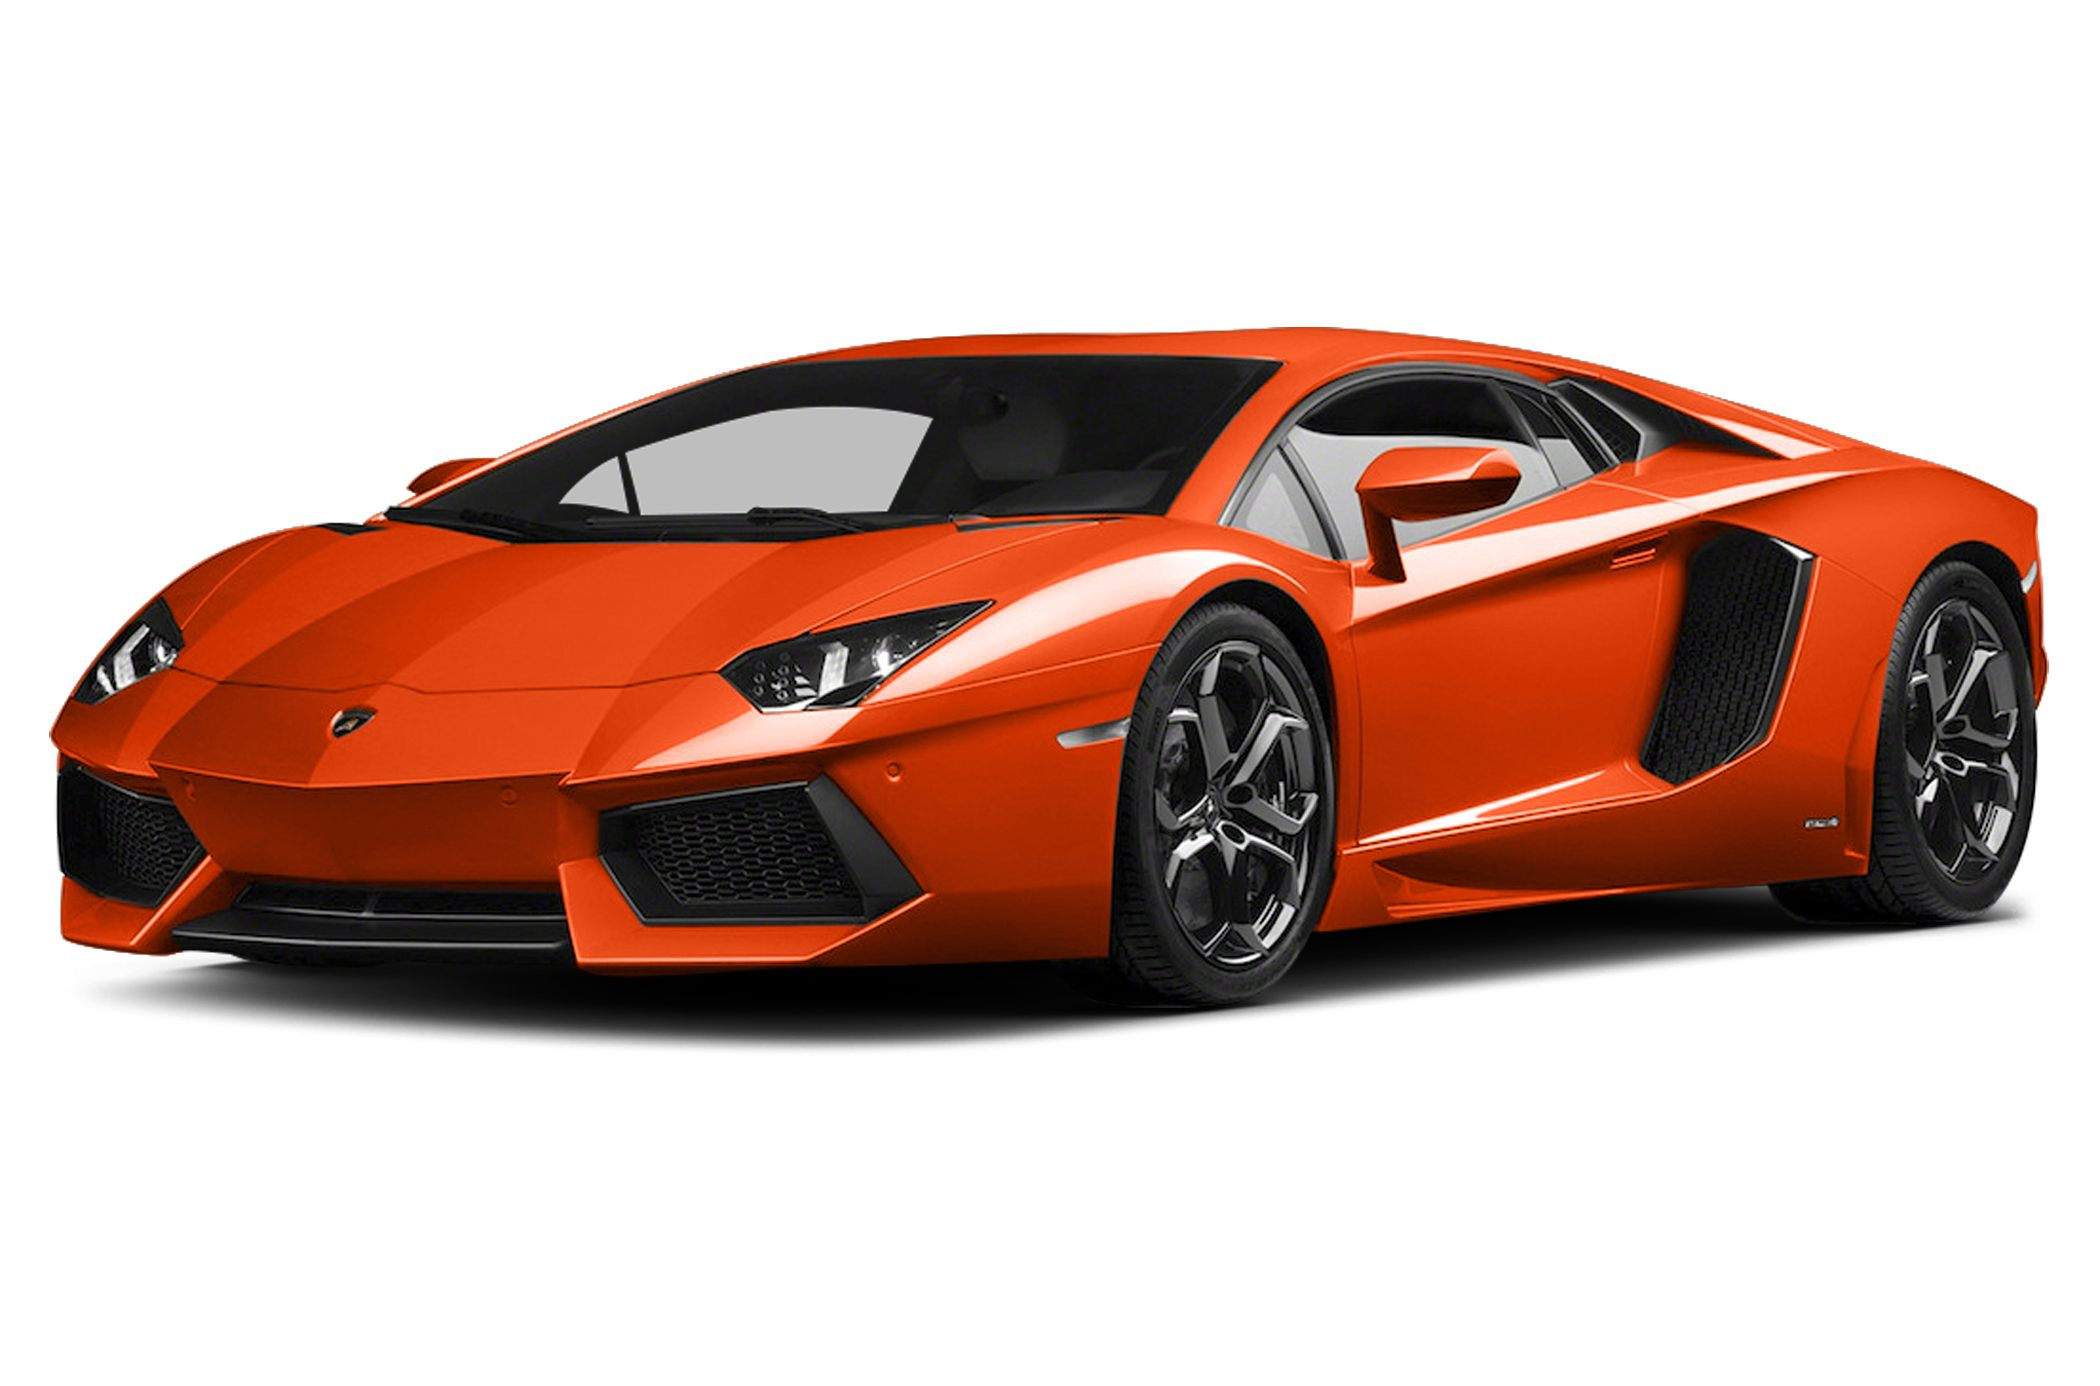 2016 Lamborghini Aventador Specs And Prices